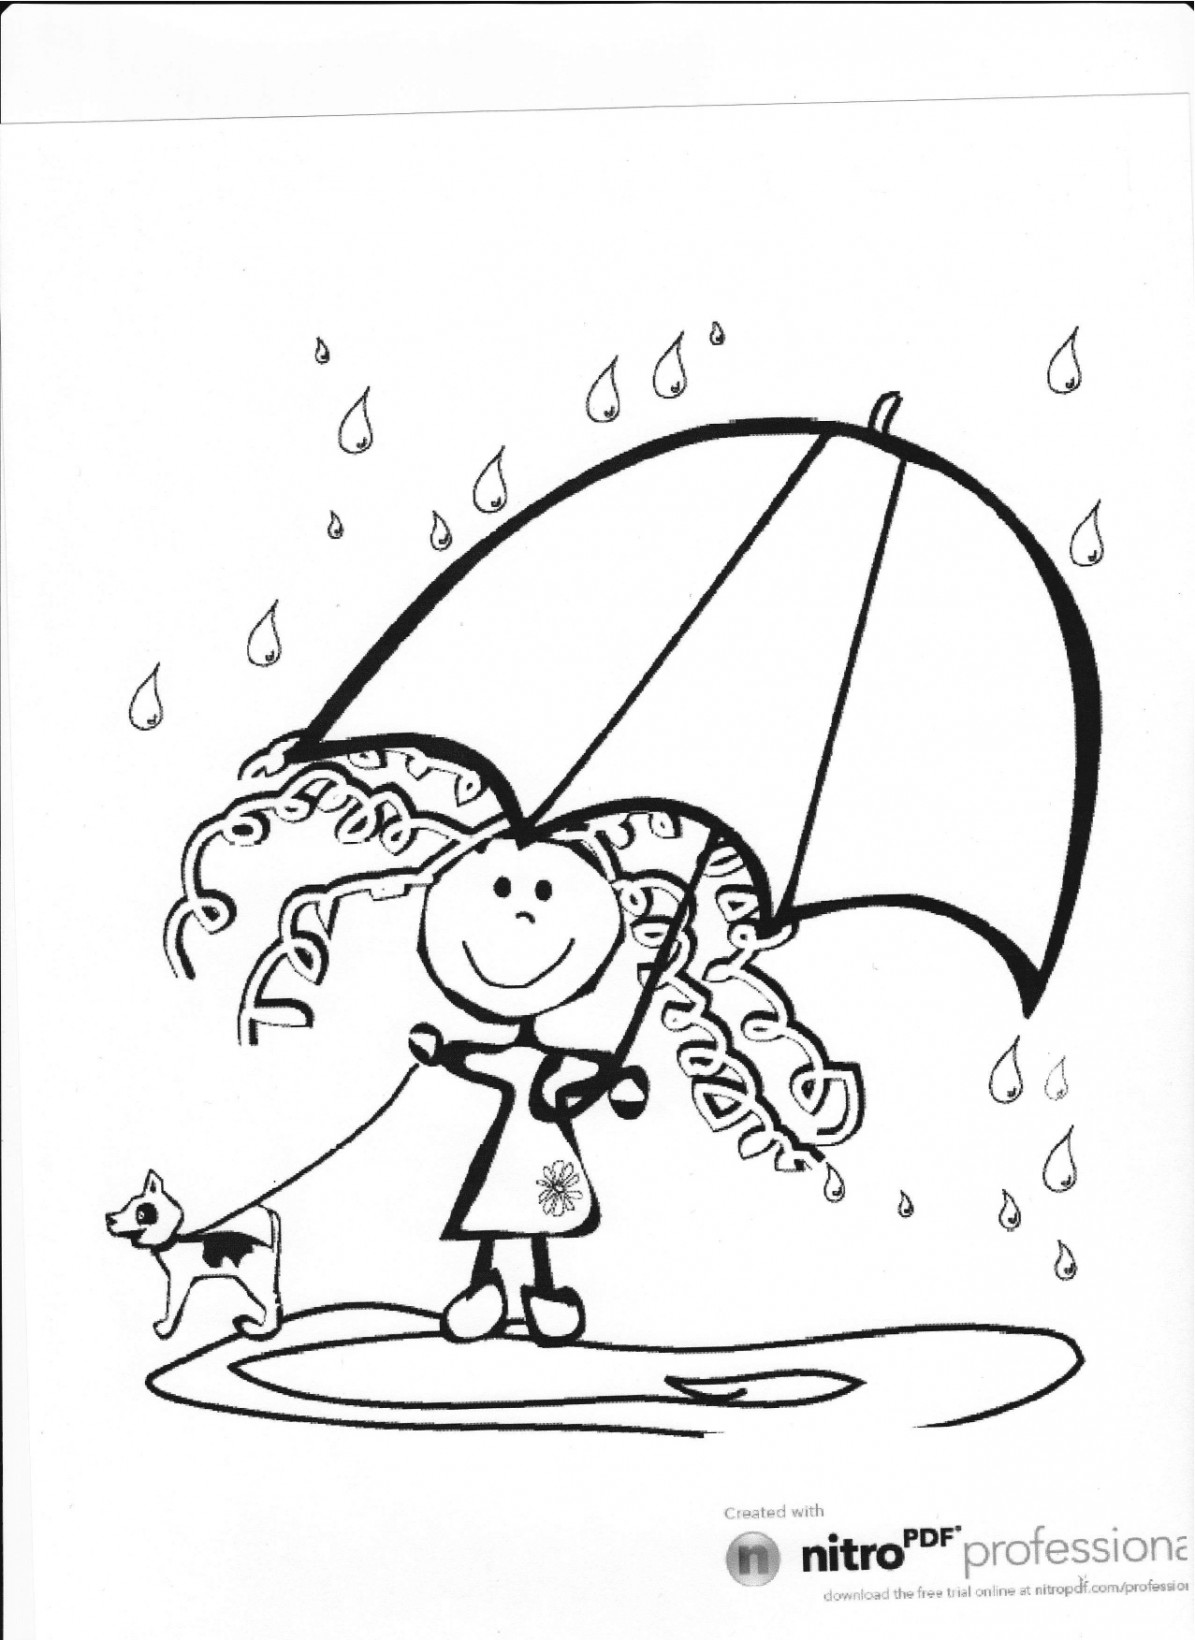 Free Coloring Pages Of Image Of A Rainy Day Rainy Day Coloring Pages